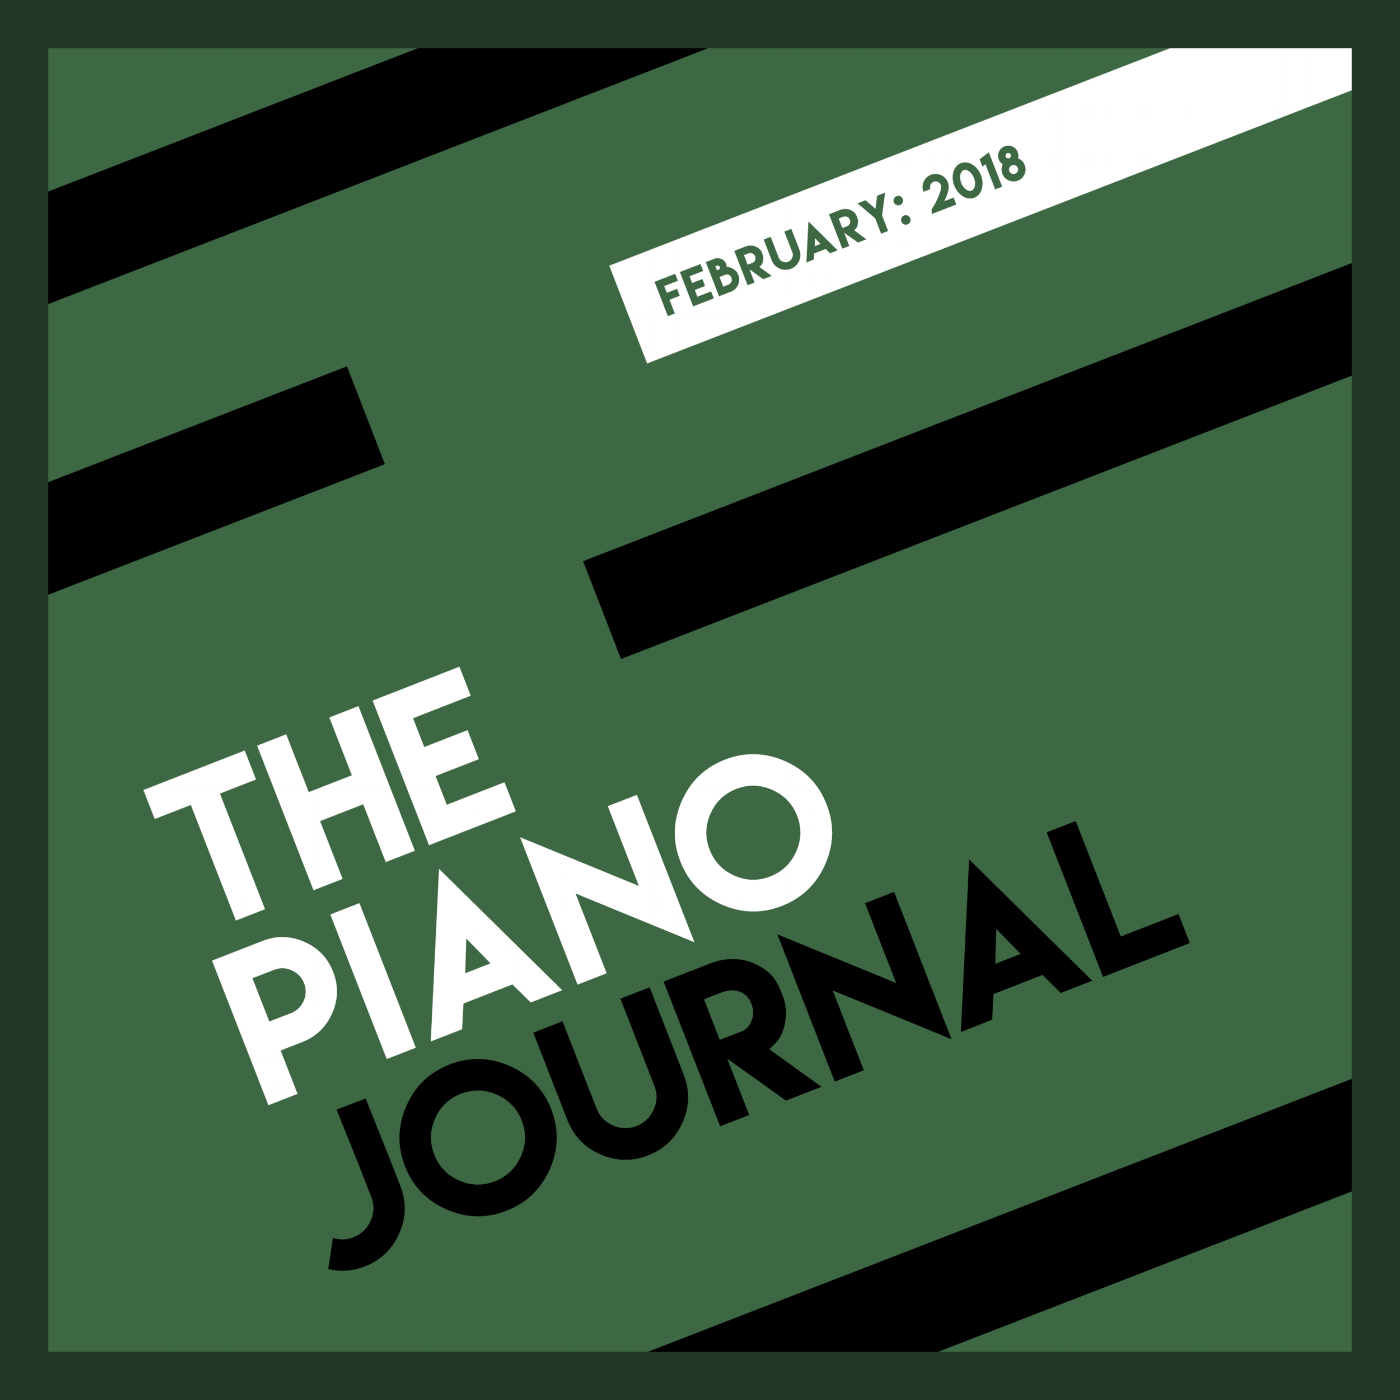 PianoJournal_FEB2.png